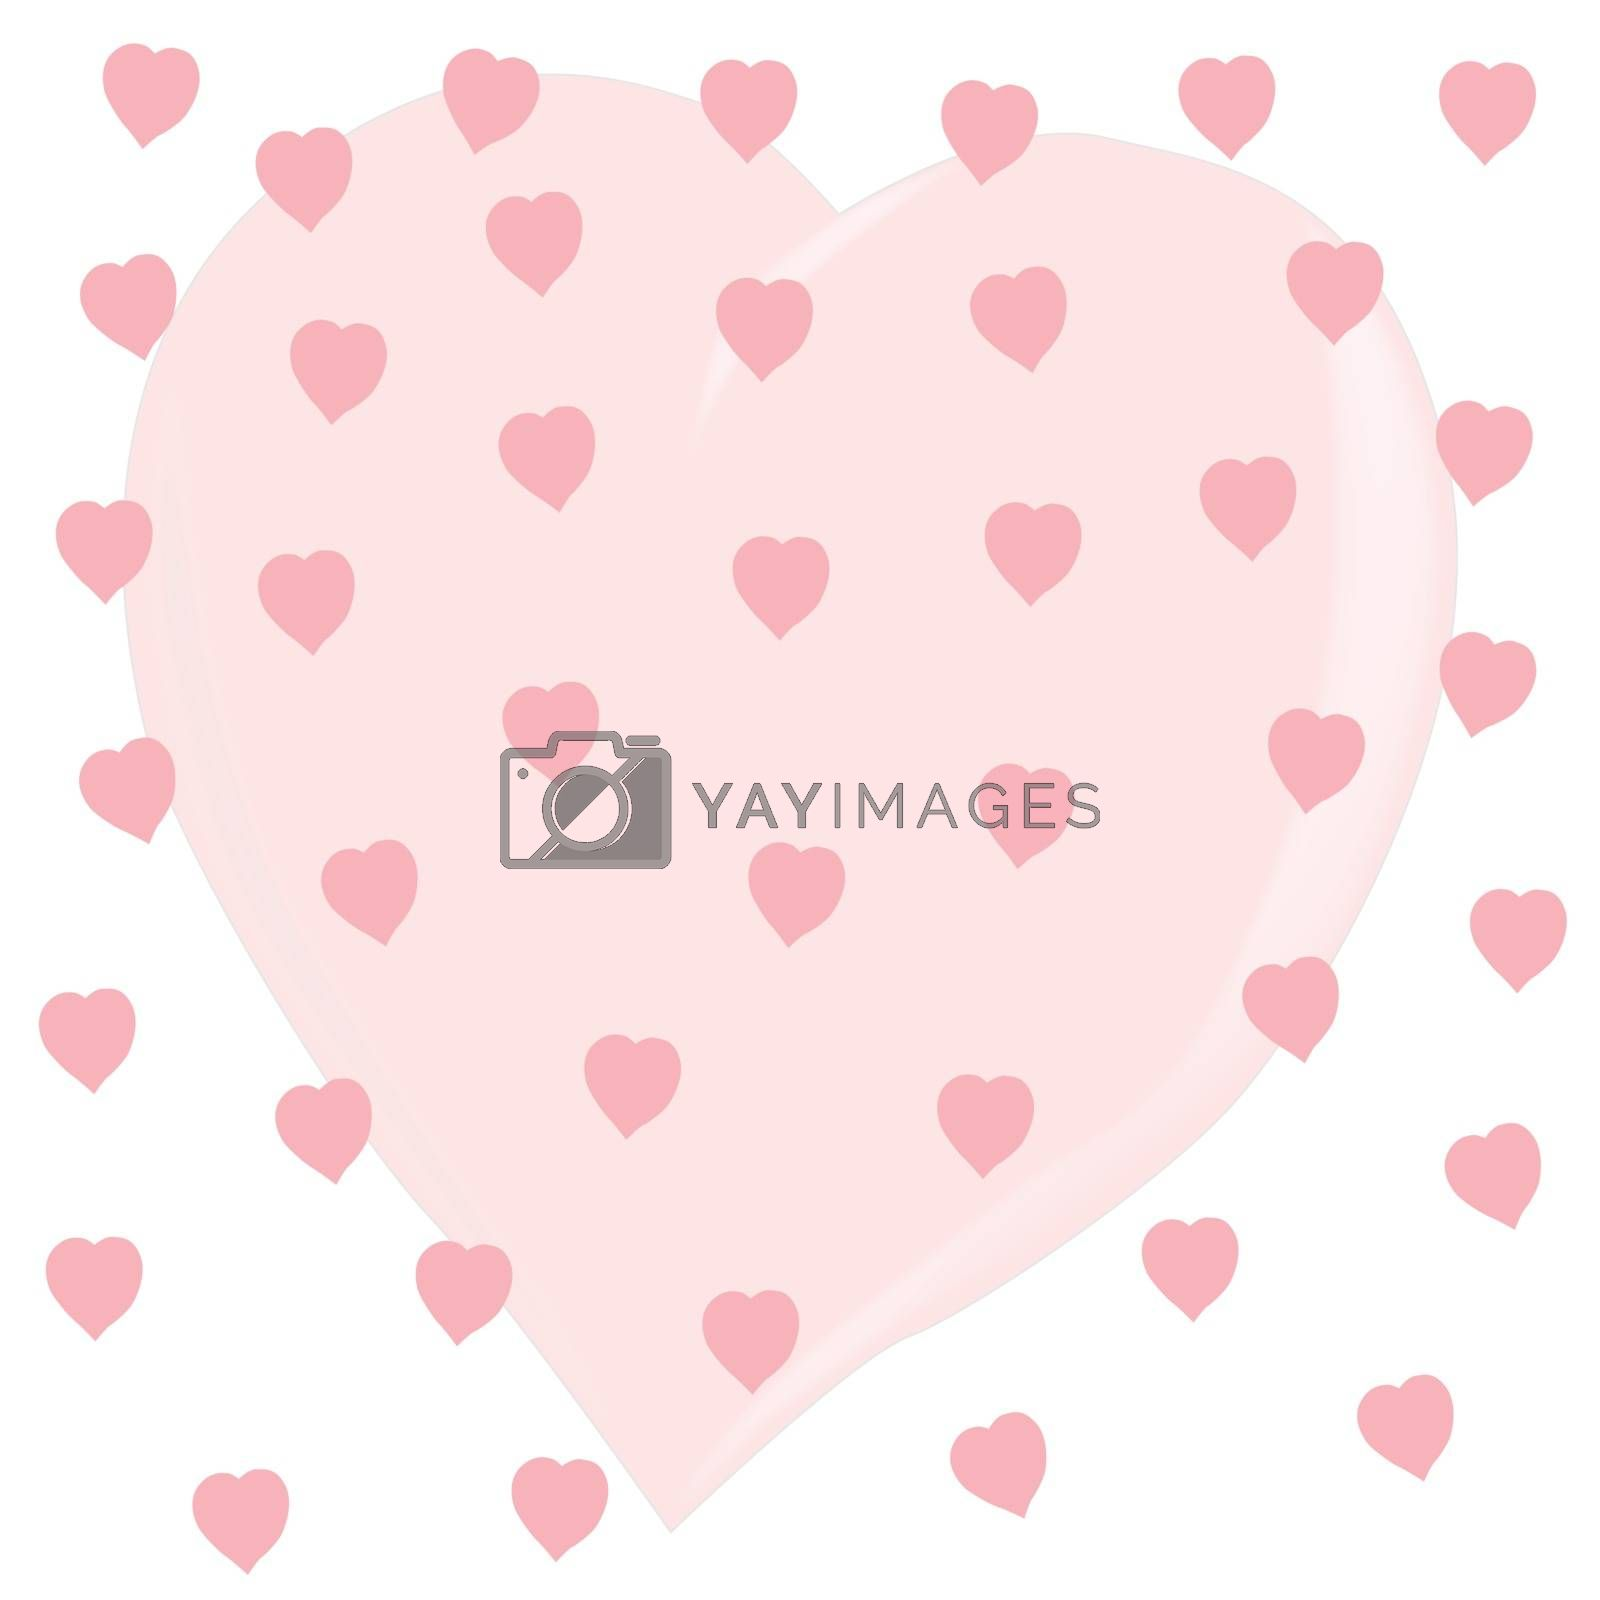 One large heart covered in several smaller ones on a white background